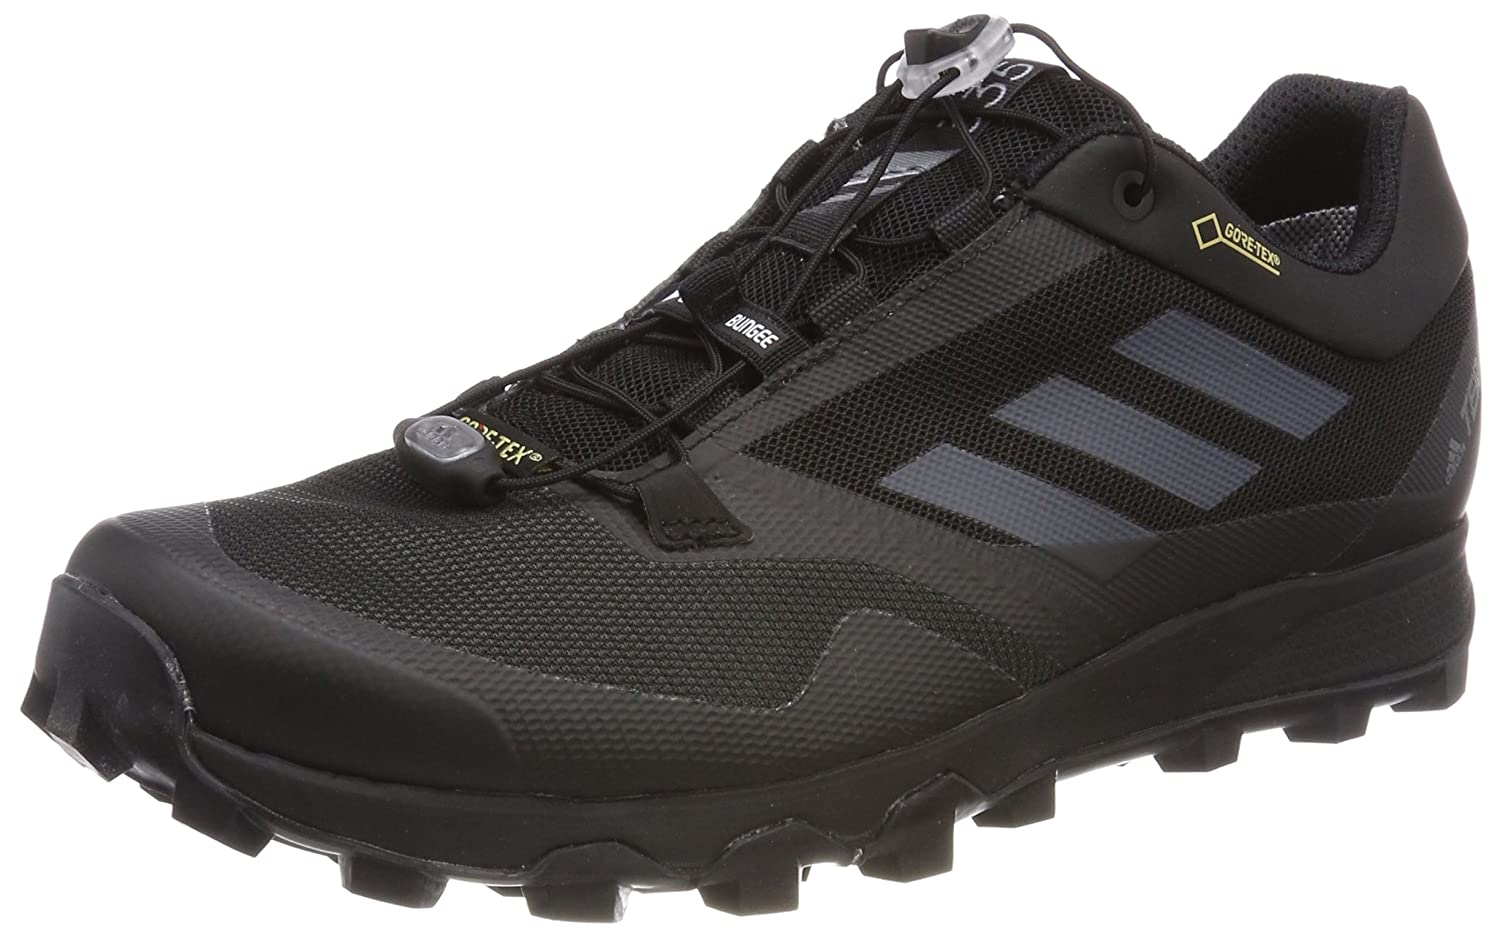 c9ebcc9f11135 adidas Men s Terrex Trailmaker GTX Cross Trainers